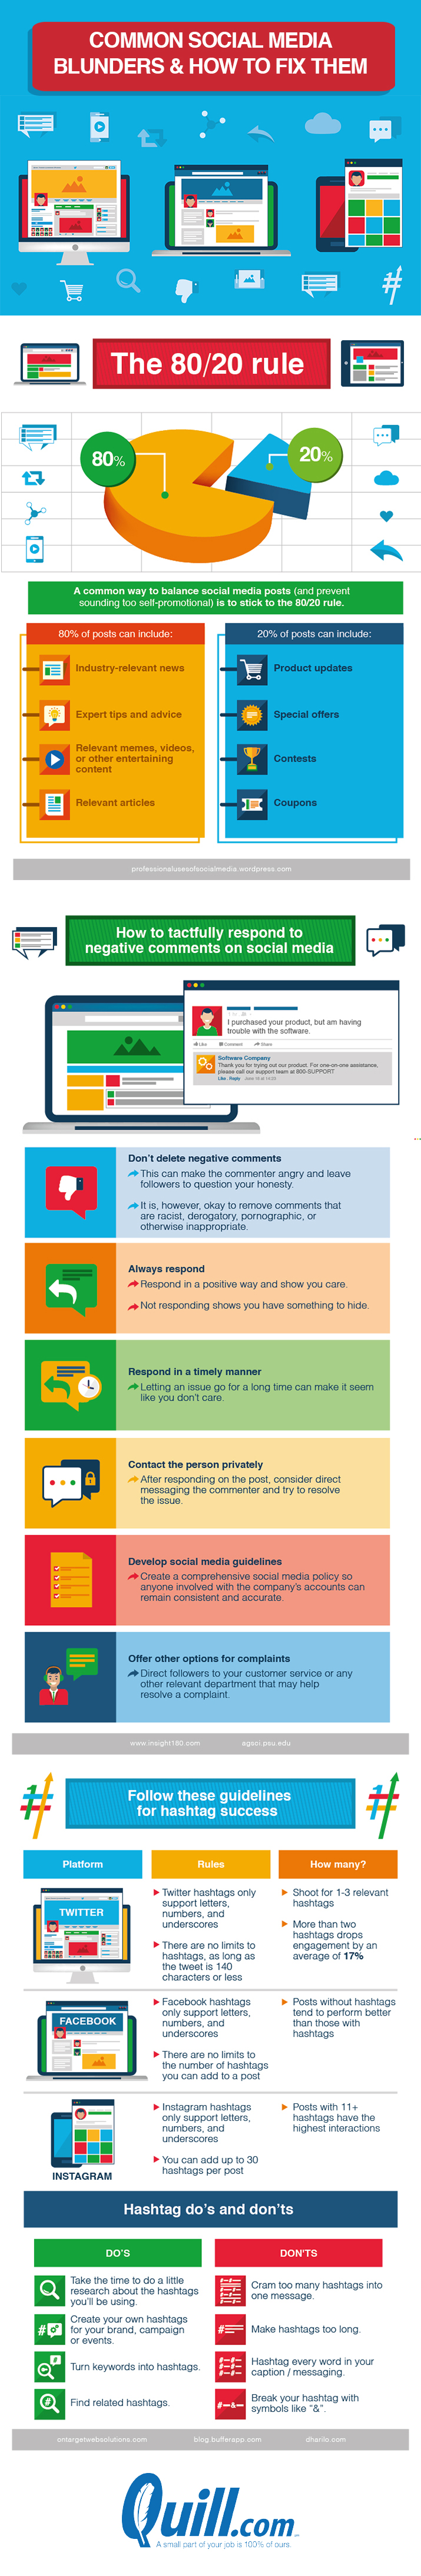 12 Common social media blunders and how to fix them - infographic